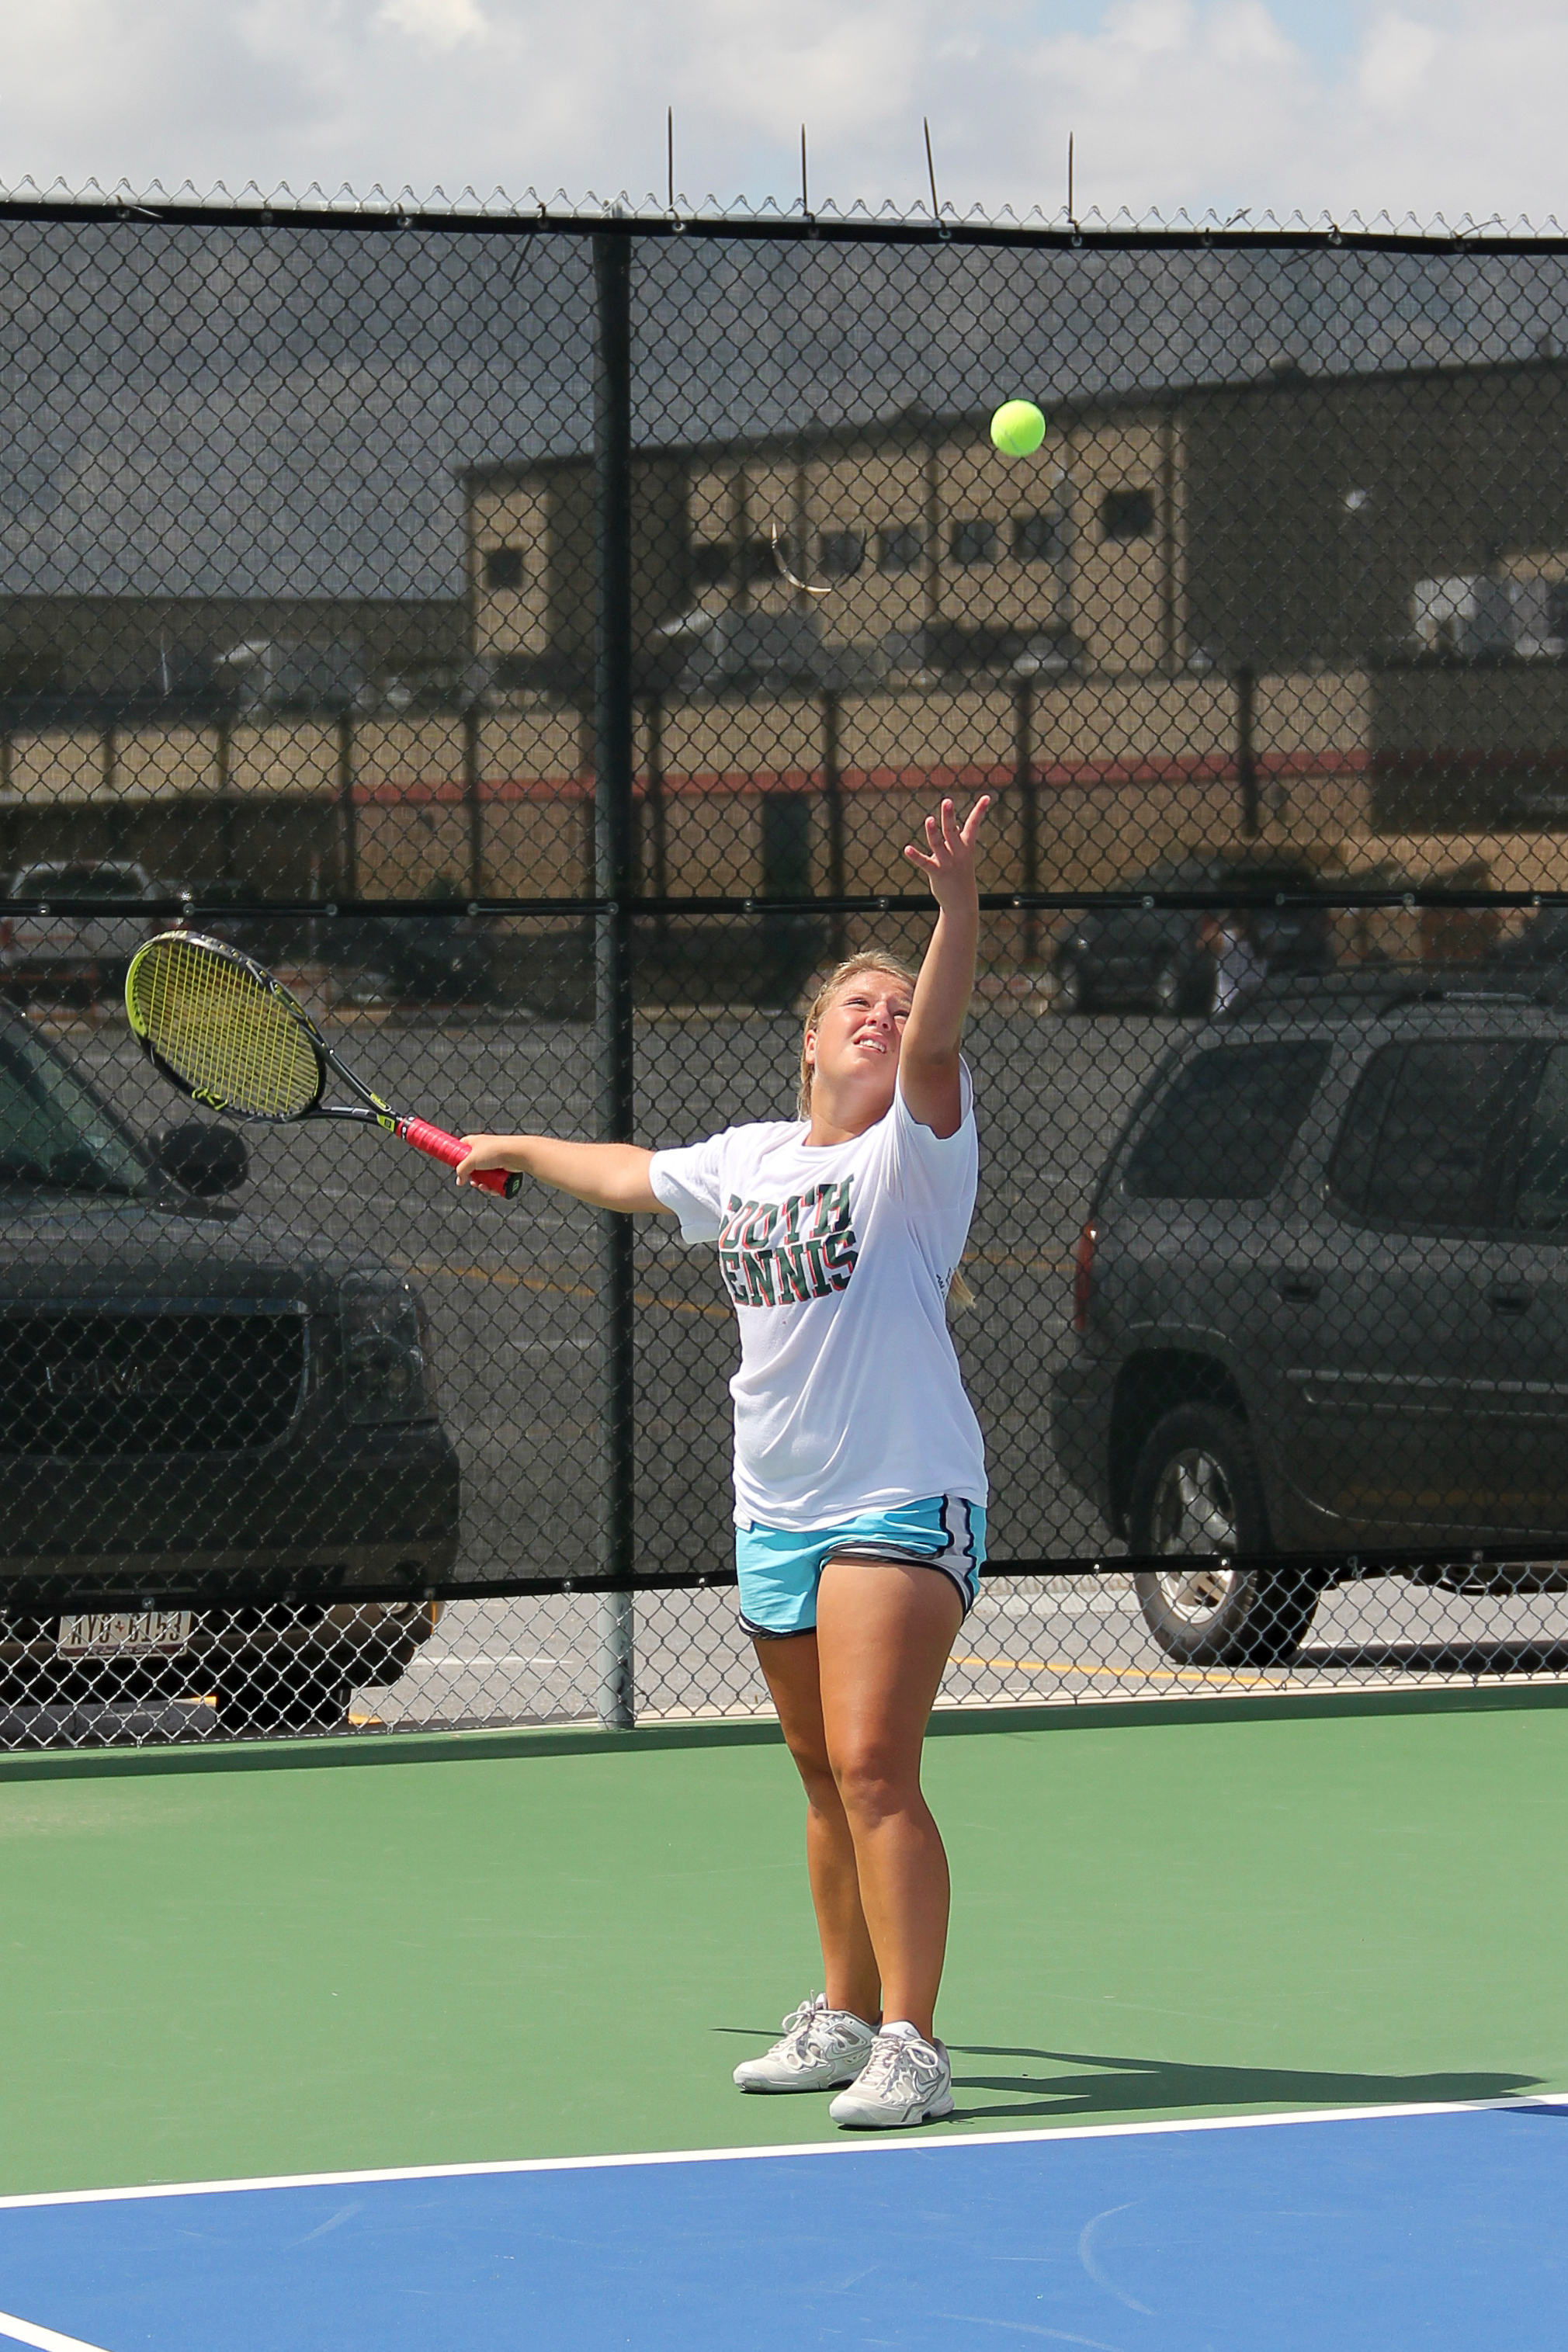 HHSS tennis team soars at Region competition